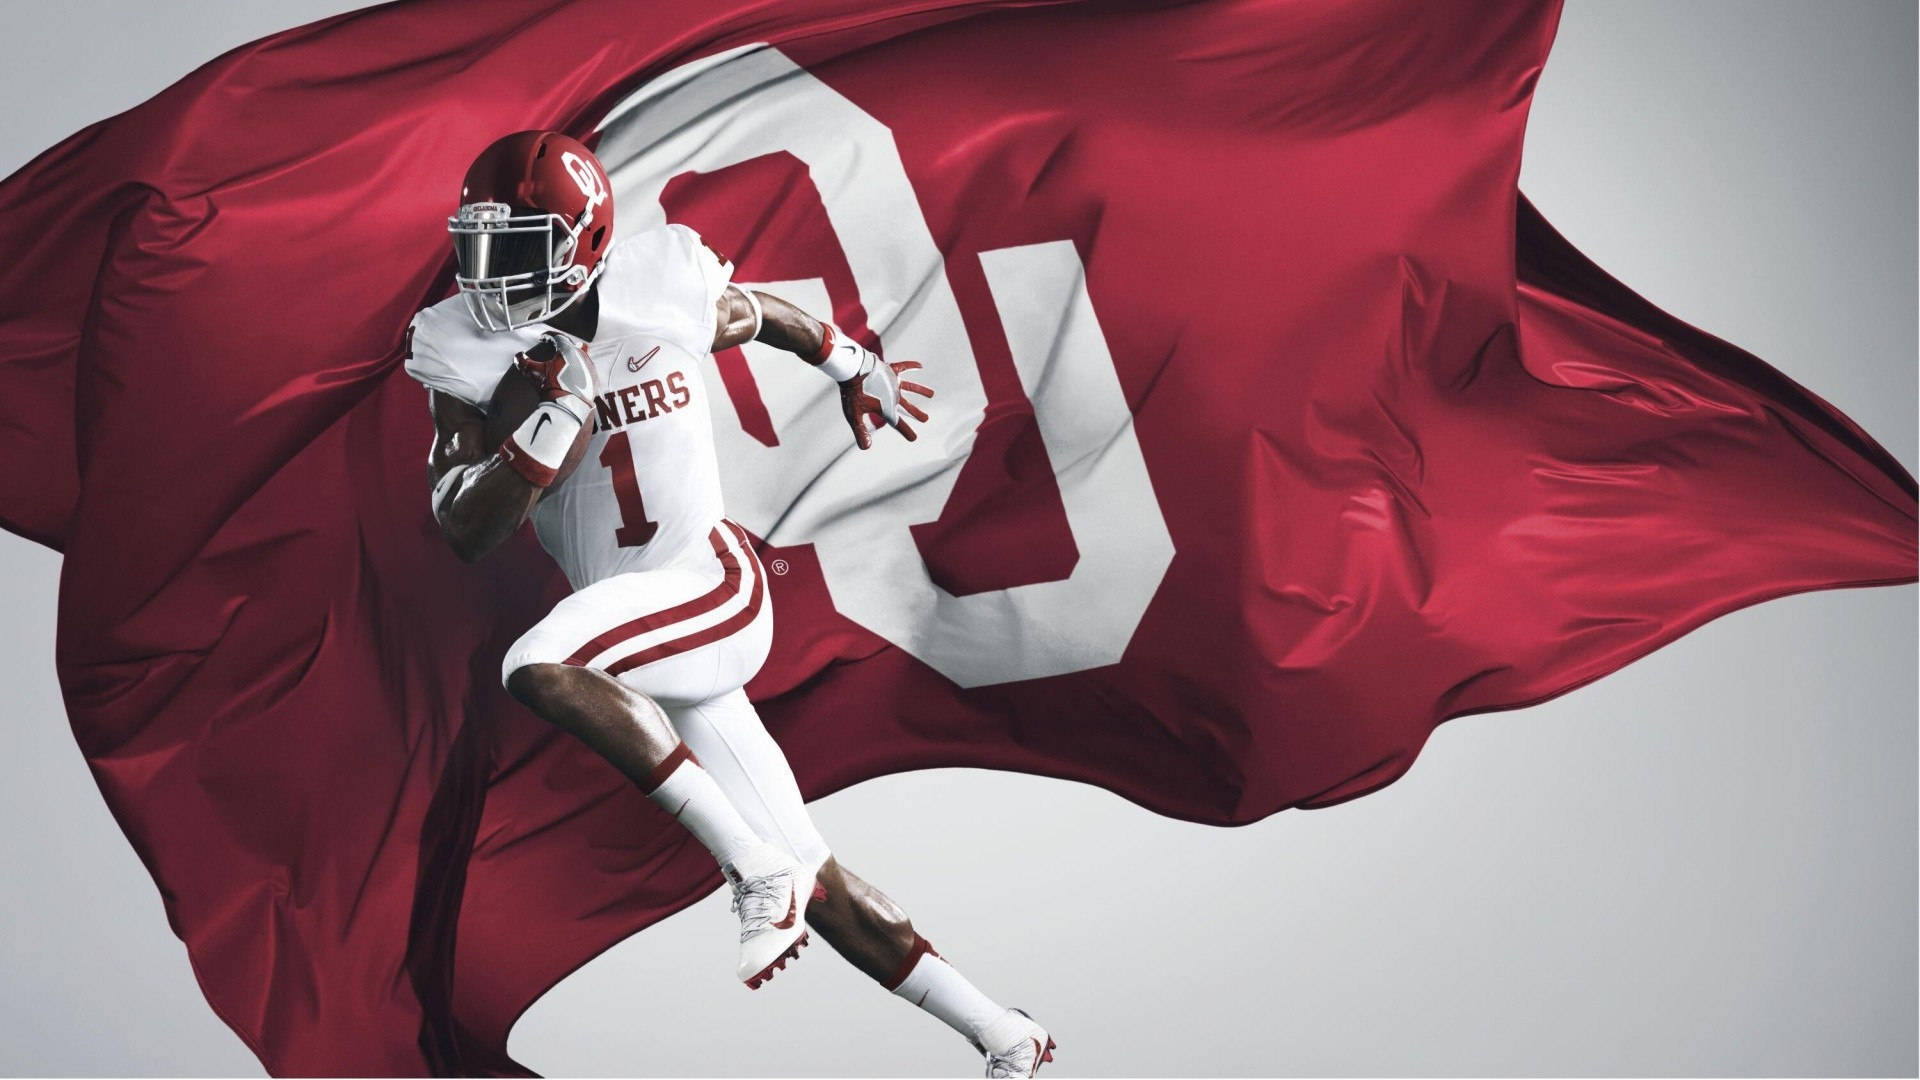 Res: 1920x1080, Oklahoma Sooners Wallpapers 17 - 1920 X 1080